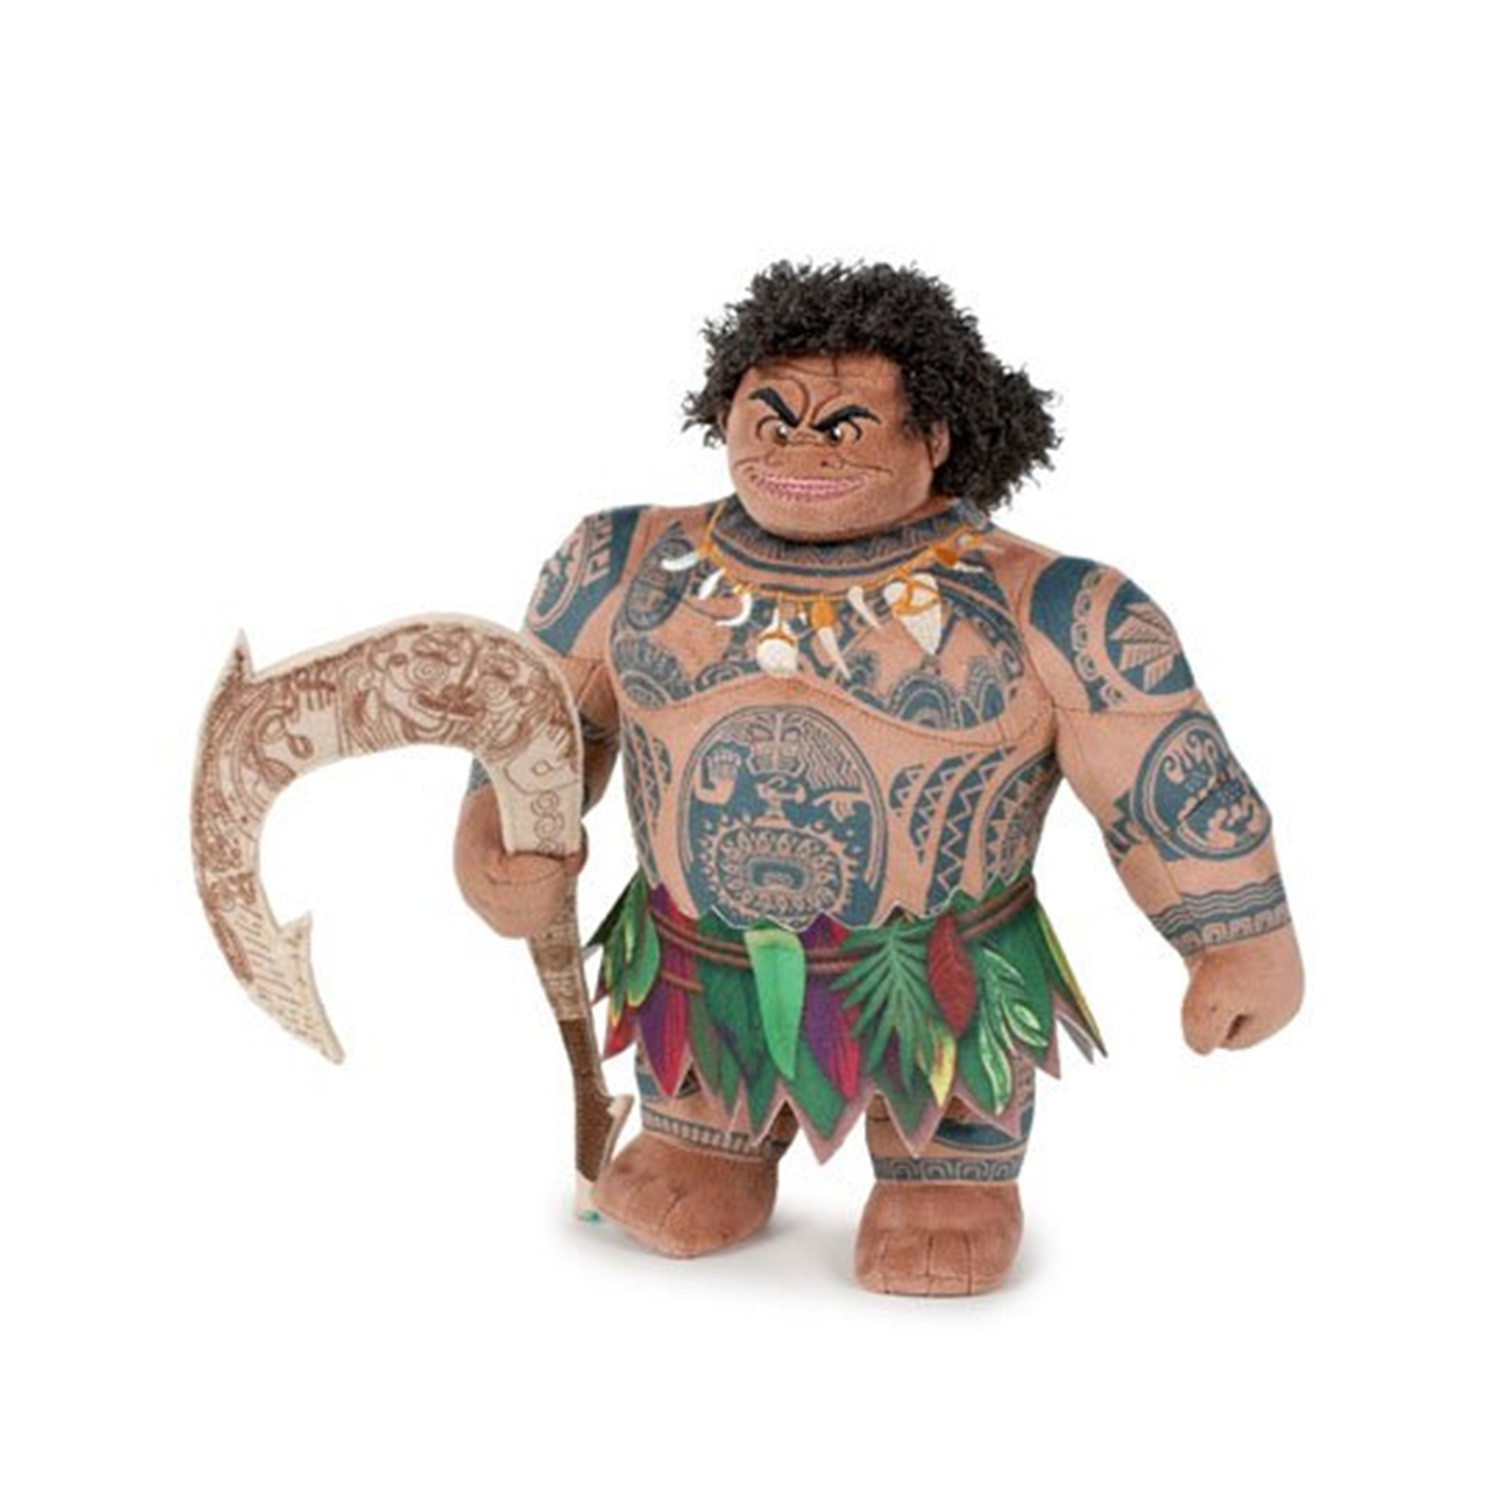 oceania peluche 25cm originale ufficiale disney vaiana moana plush official new ebay. Black Bedroom Furniture Sets. Home Design Ideas